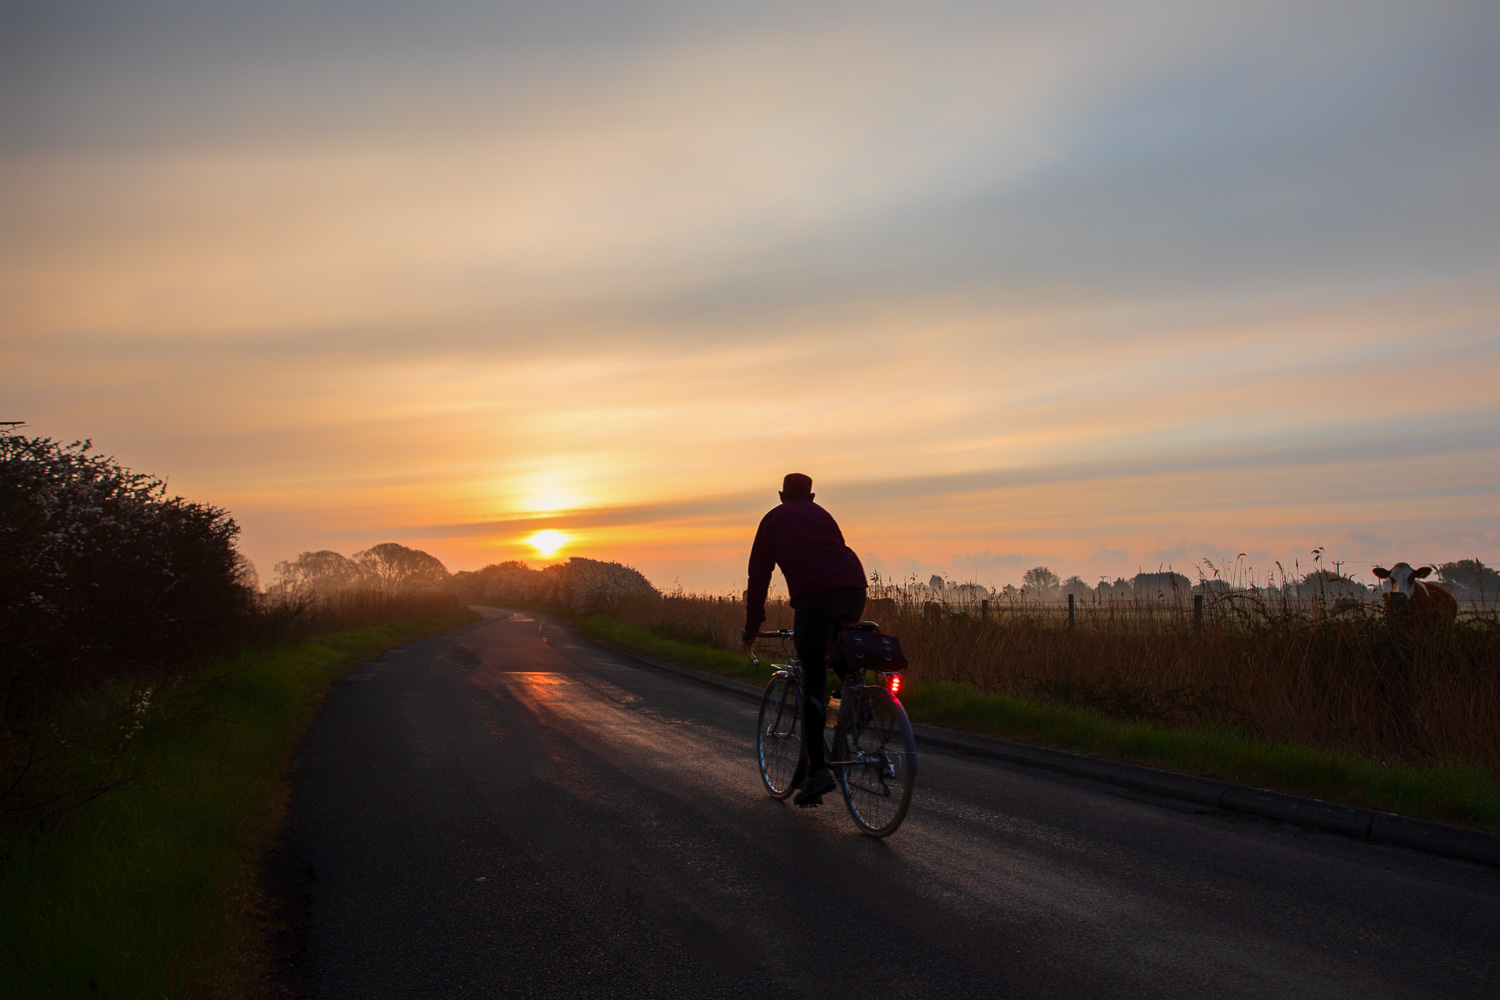 Solitary cyclist pedalling towards rising sun on country lane